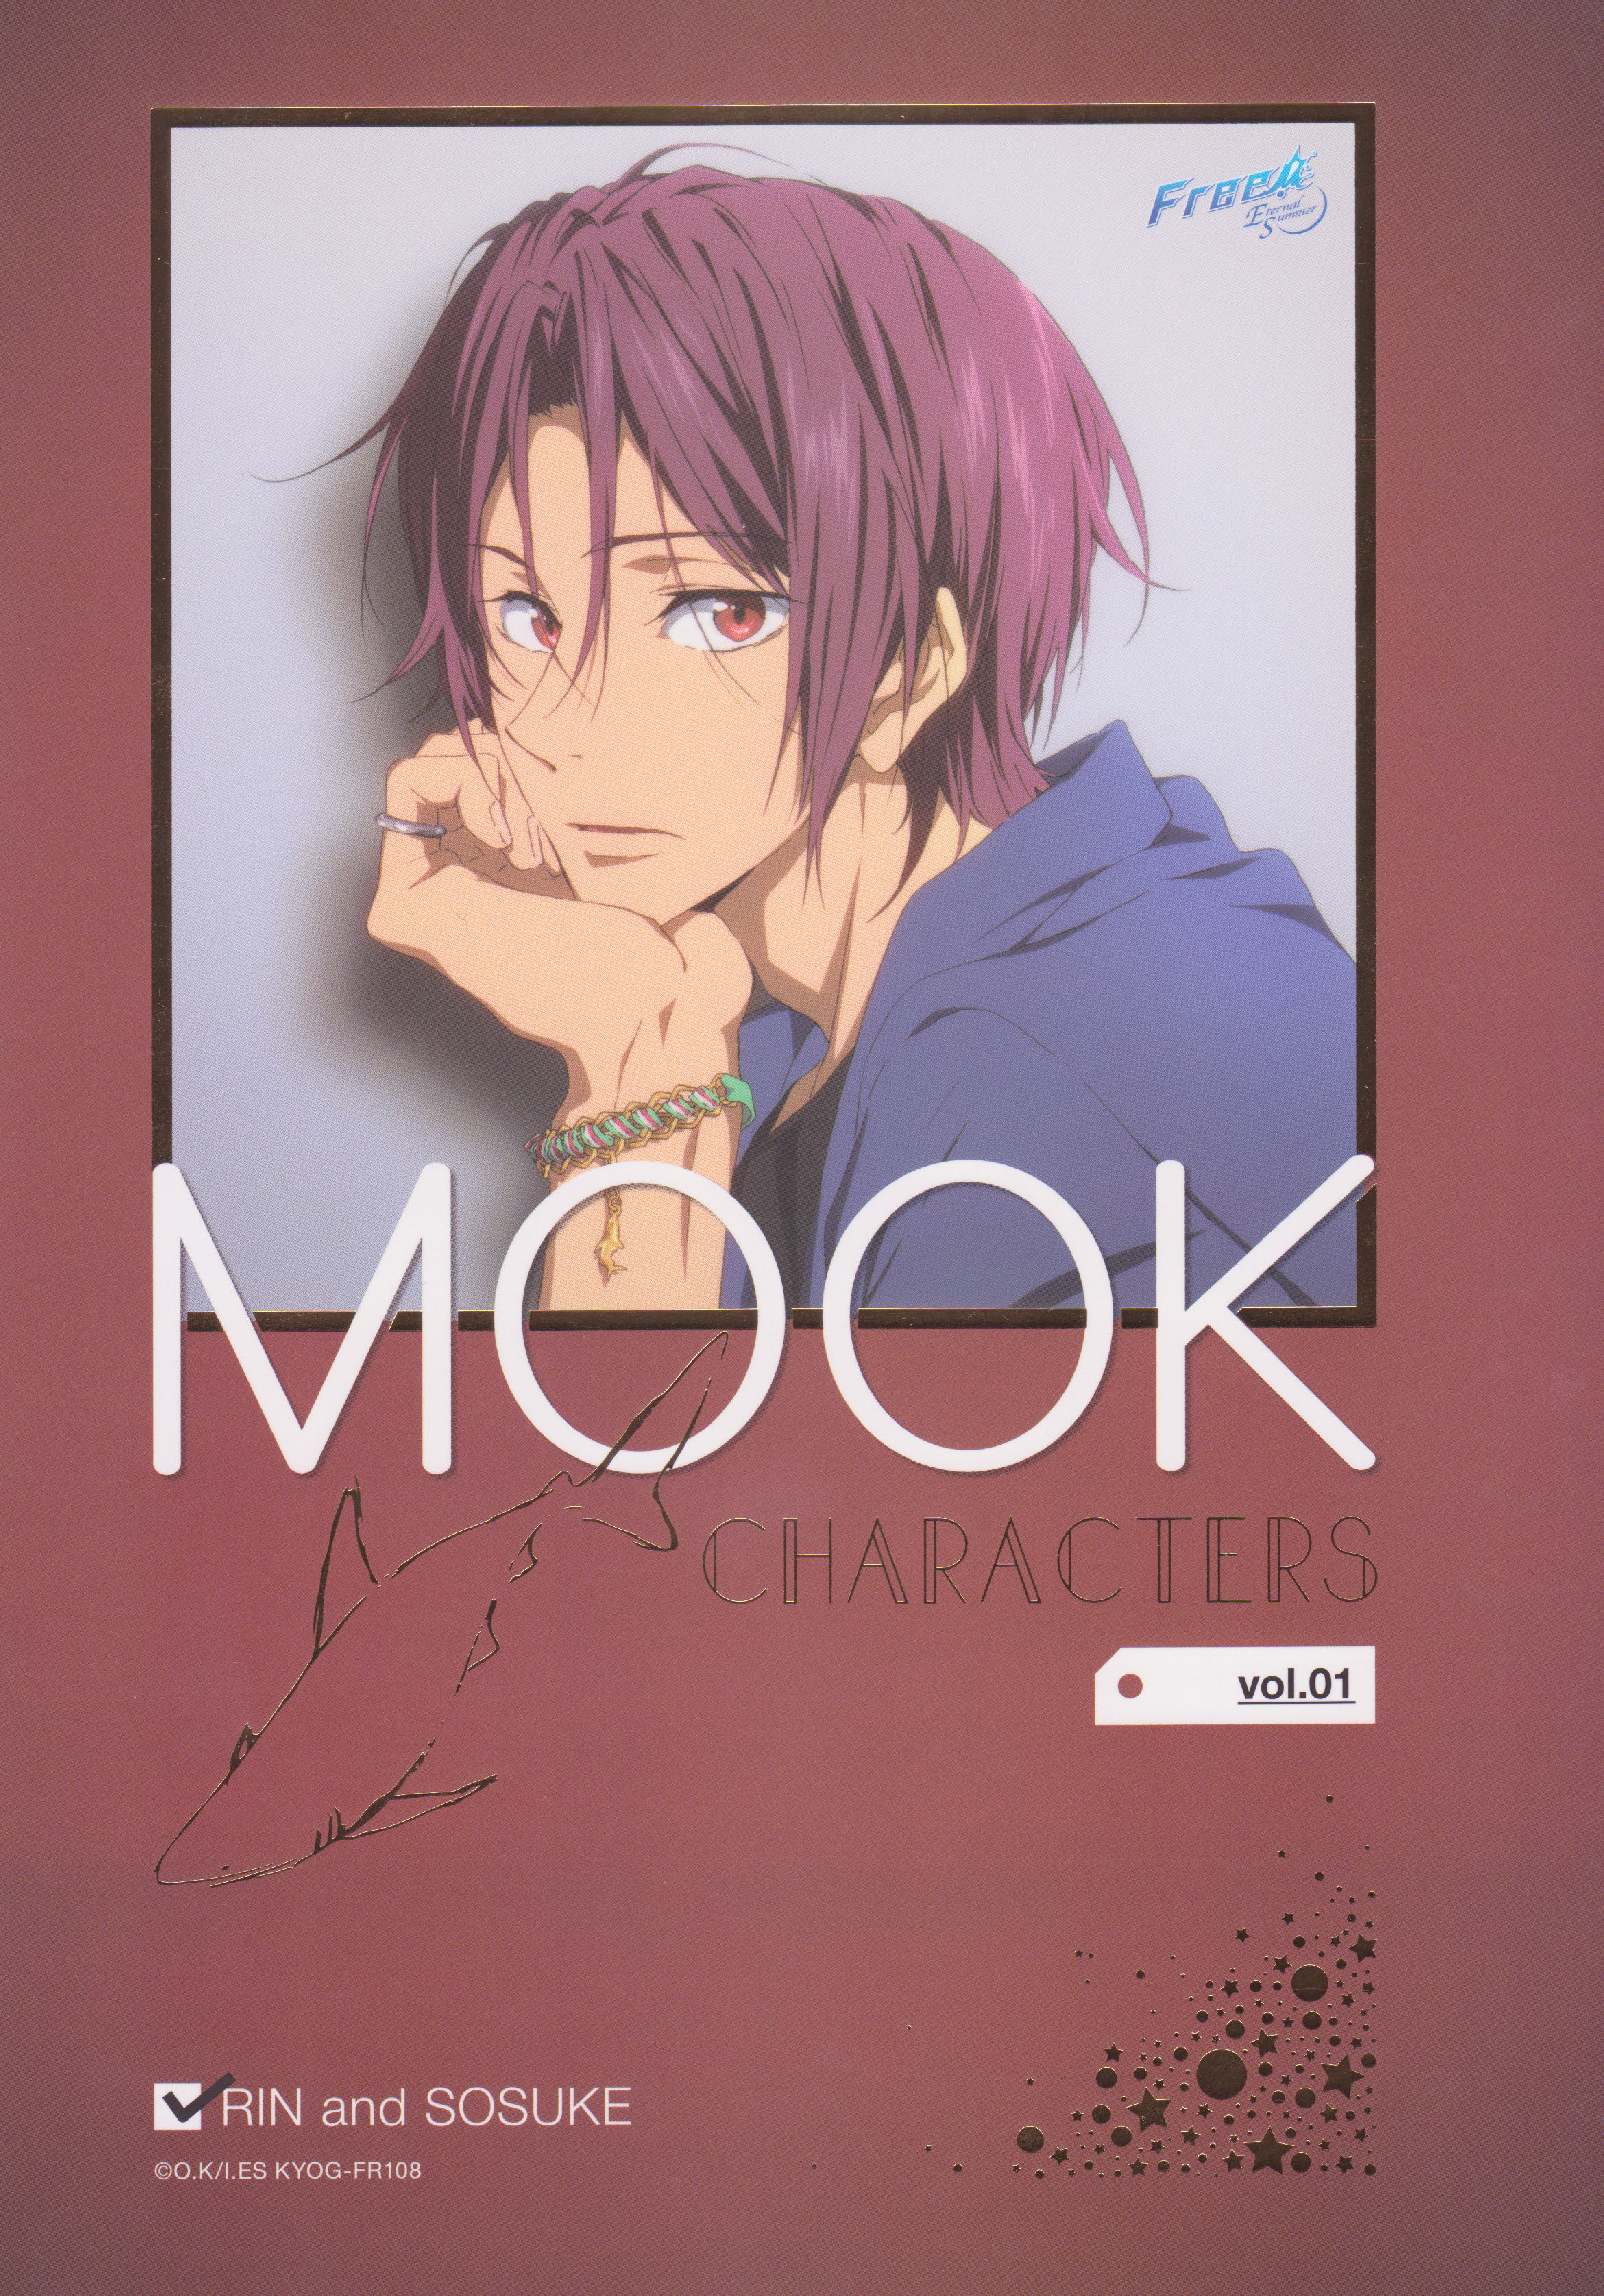 Pin En Free Zerochan has 888 matsuoka rin anime images, wallpapers, hd wallpapers, android/iphone wallpapers, fanart, cosplay pictures, facebook covers, and many more in its gallery. pinterest